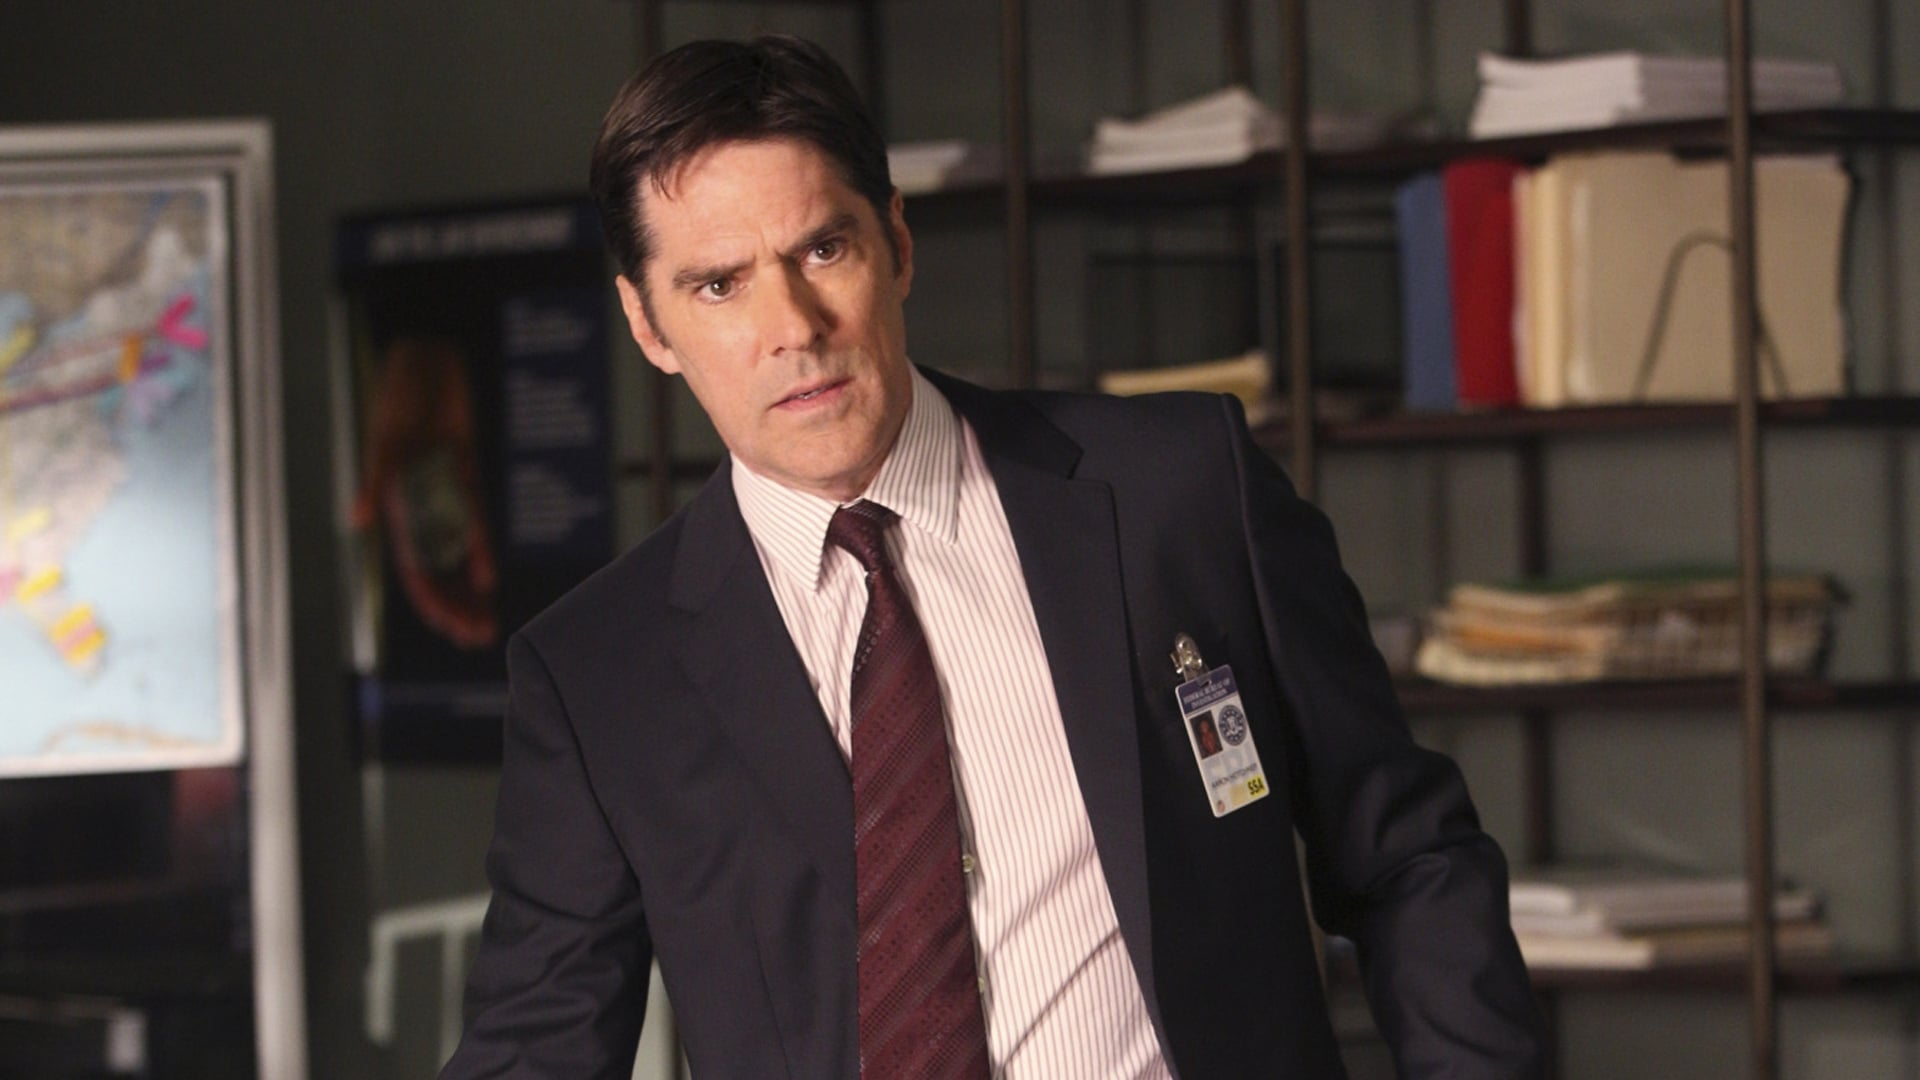 Criminal Minds - Season 11 Episode 5 : The Night Watch